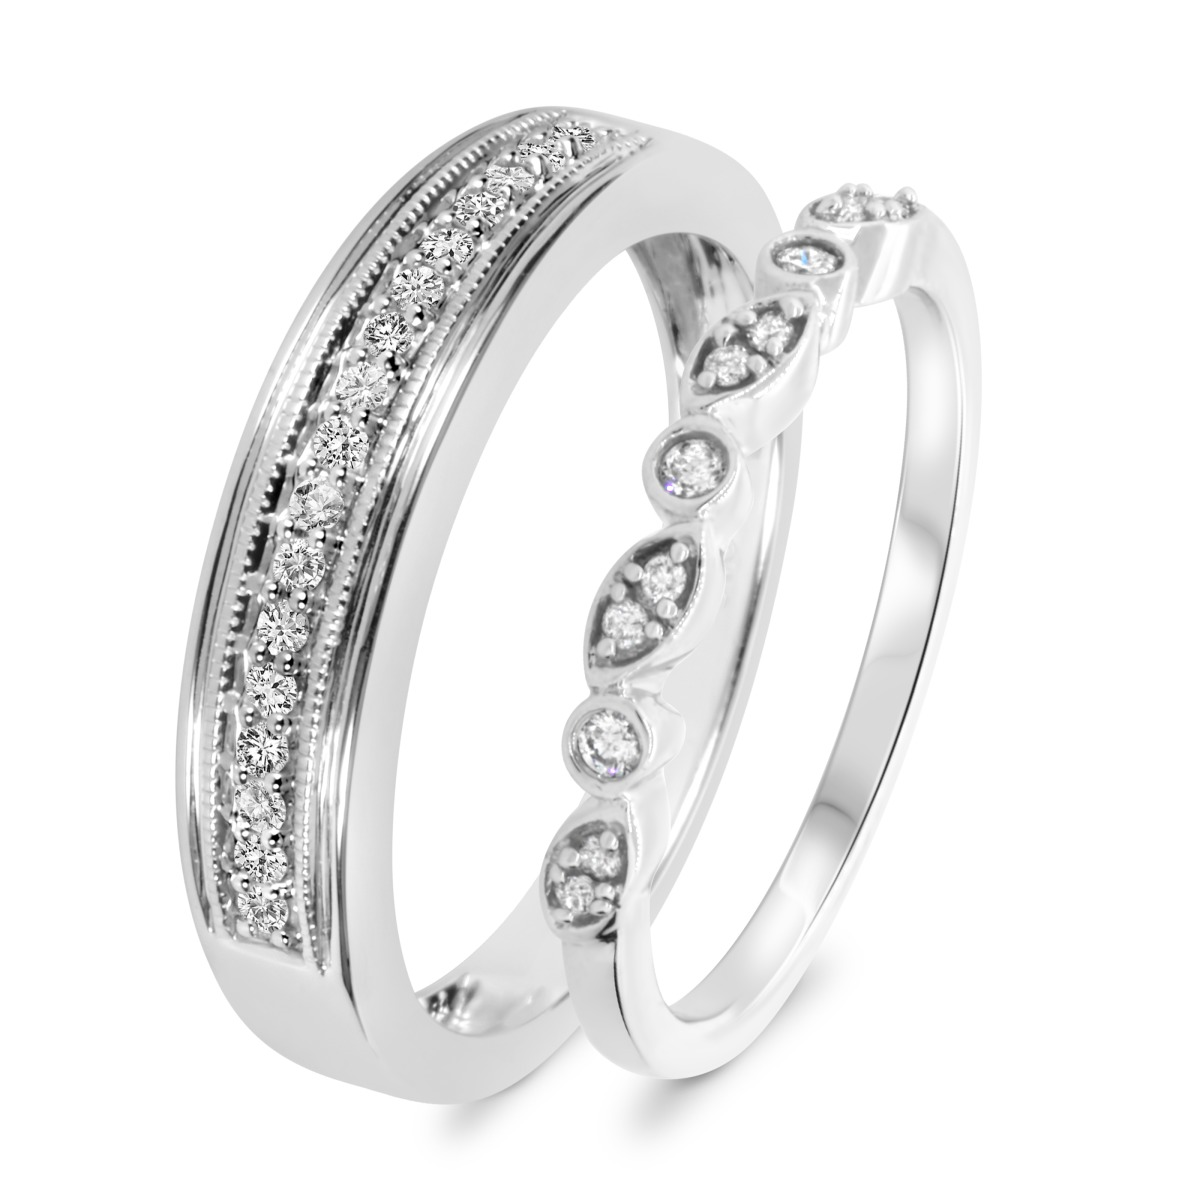 2/3 Carat T.W. Diamond Matching Wedding Band Set 10K White Gold